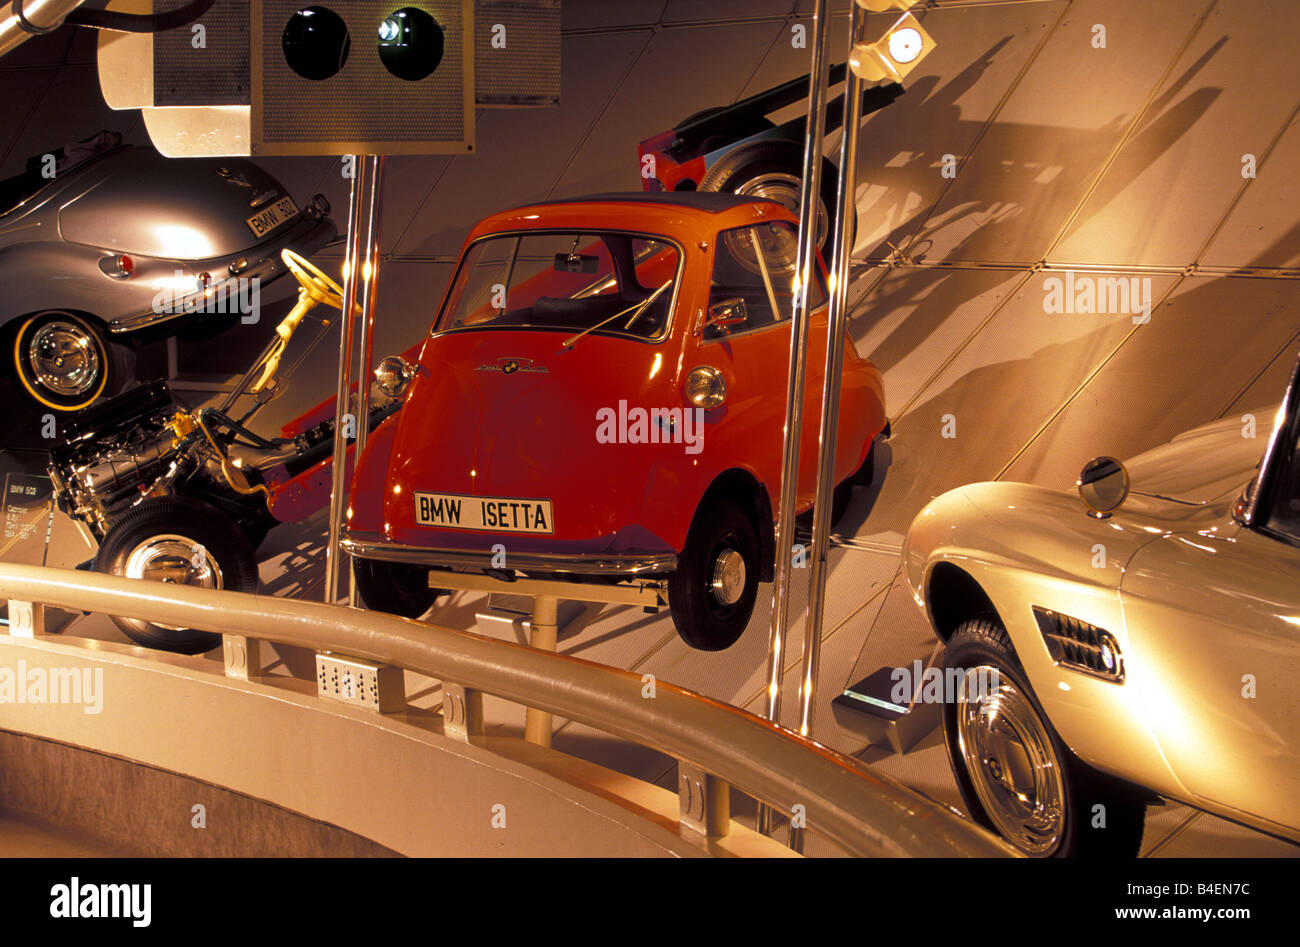 Car BMW Museum Mnchen Events Event Exhibition Exhibitions Vintage Interior